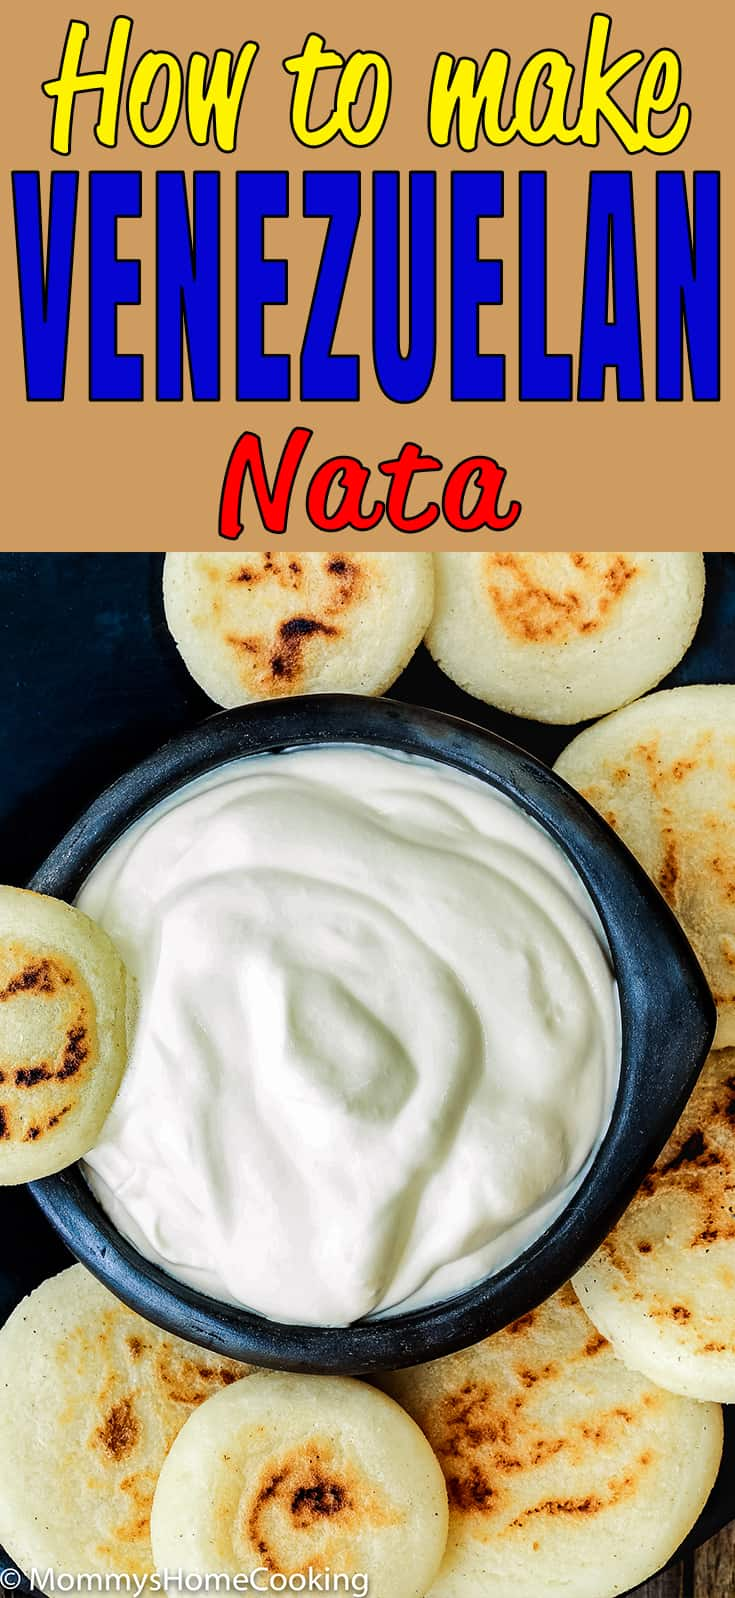 This homemade Venezuelan Nata is savory, a little bit tart and super creamy! Keep reading to learn How to Make Venezuelan Nata with only 3 ingredients; it will be ready in 15 minutes. Perfect to spread on arepas, cachapas or casabe. https://mommyshomecooking.com